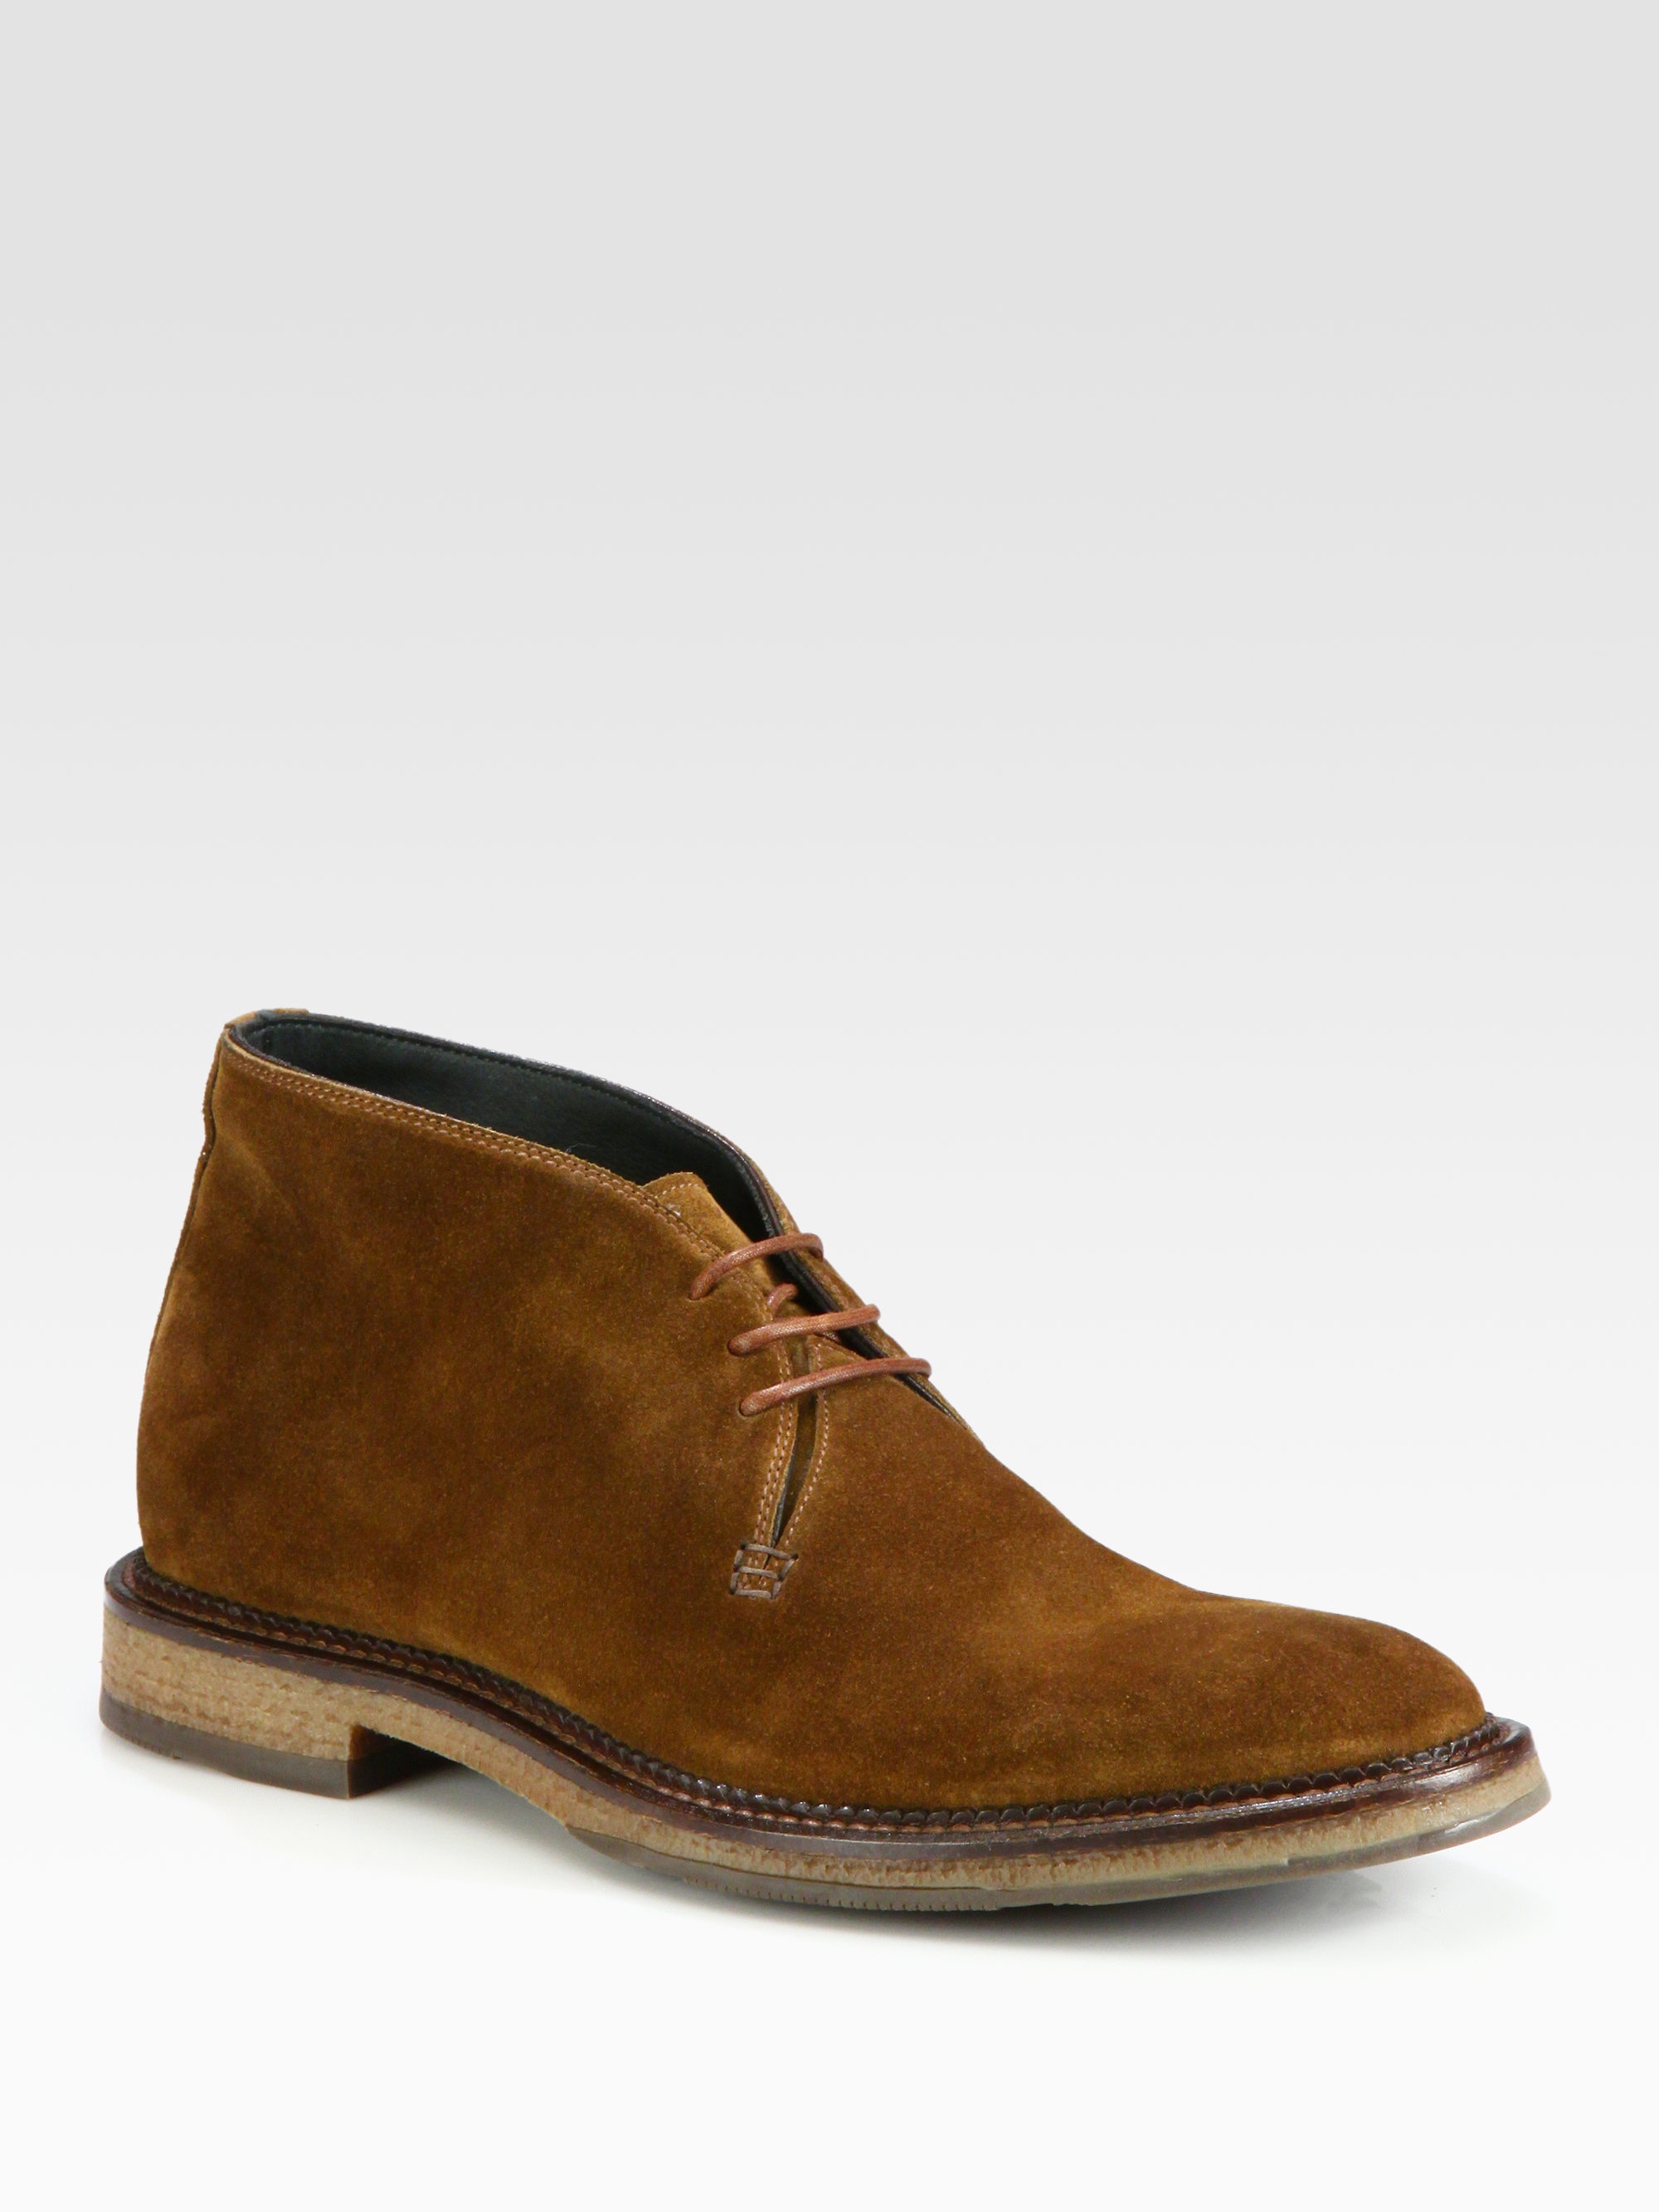 To Boot Clarkston Crepe Sole Chukka Boot In Brown For Men